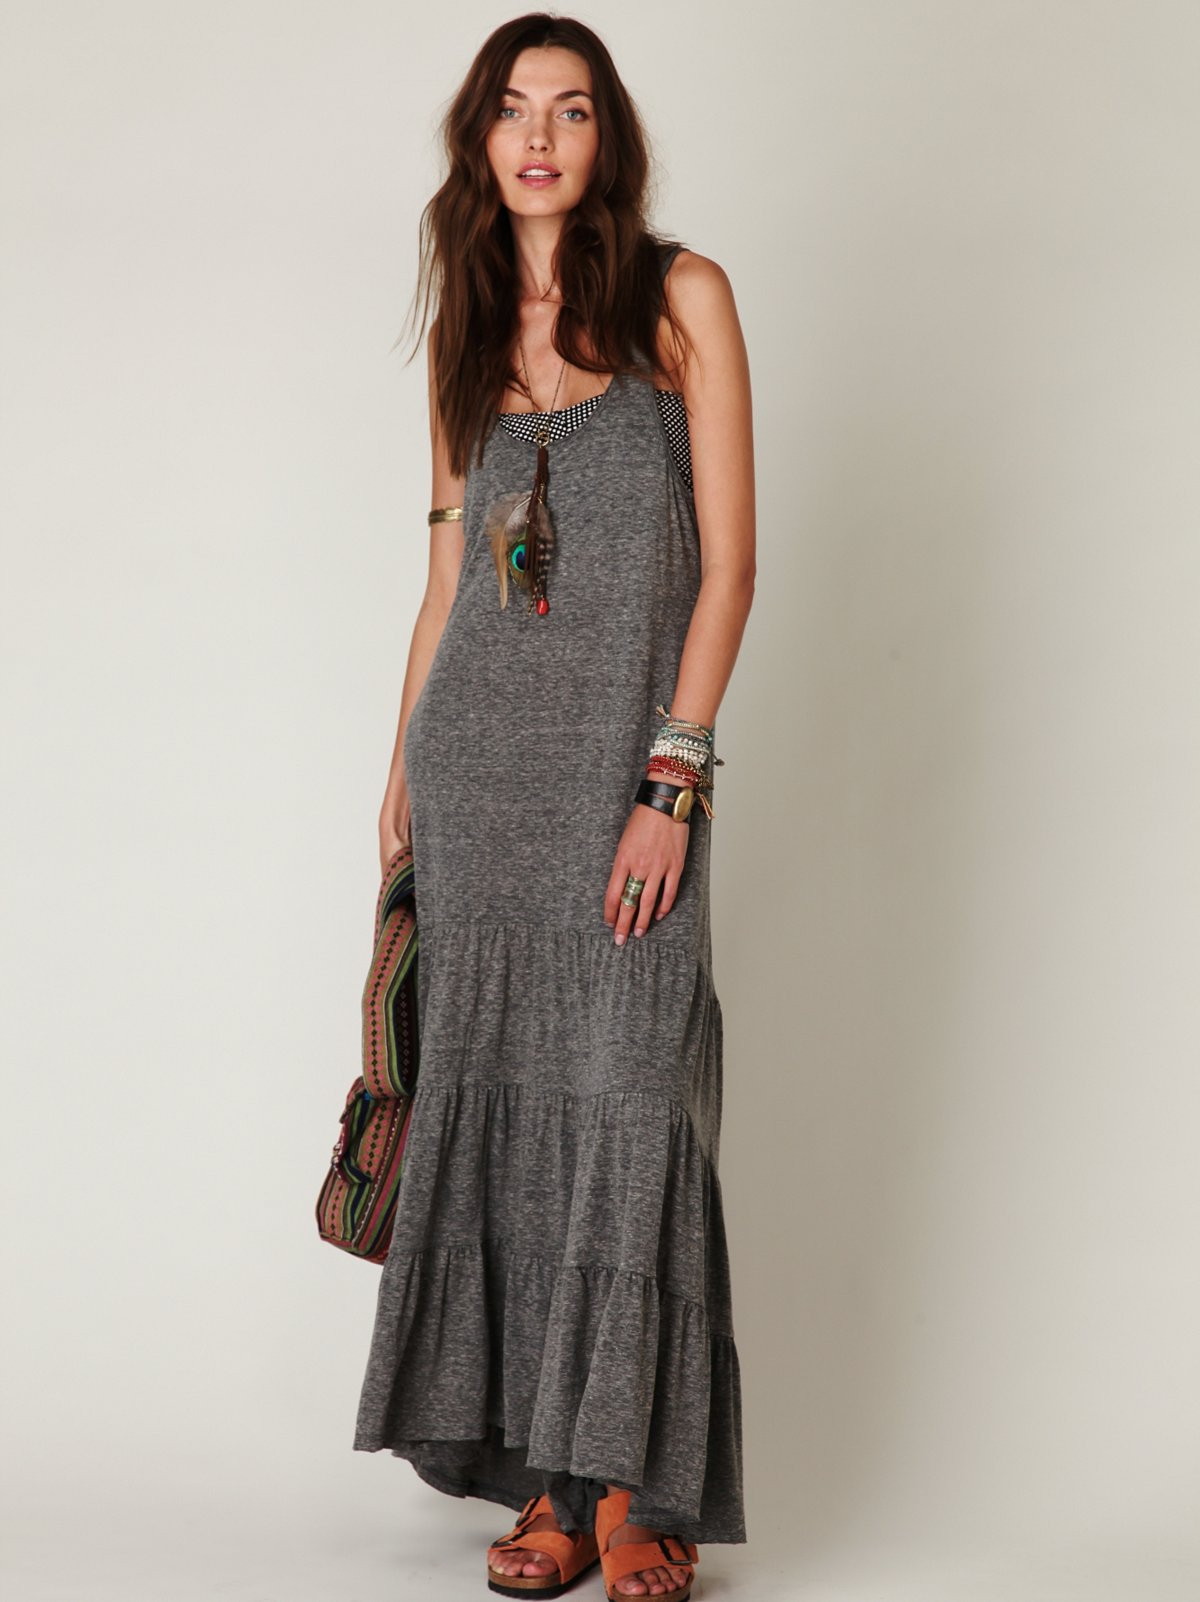 Move West Maxi Dress